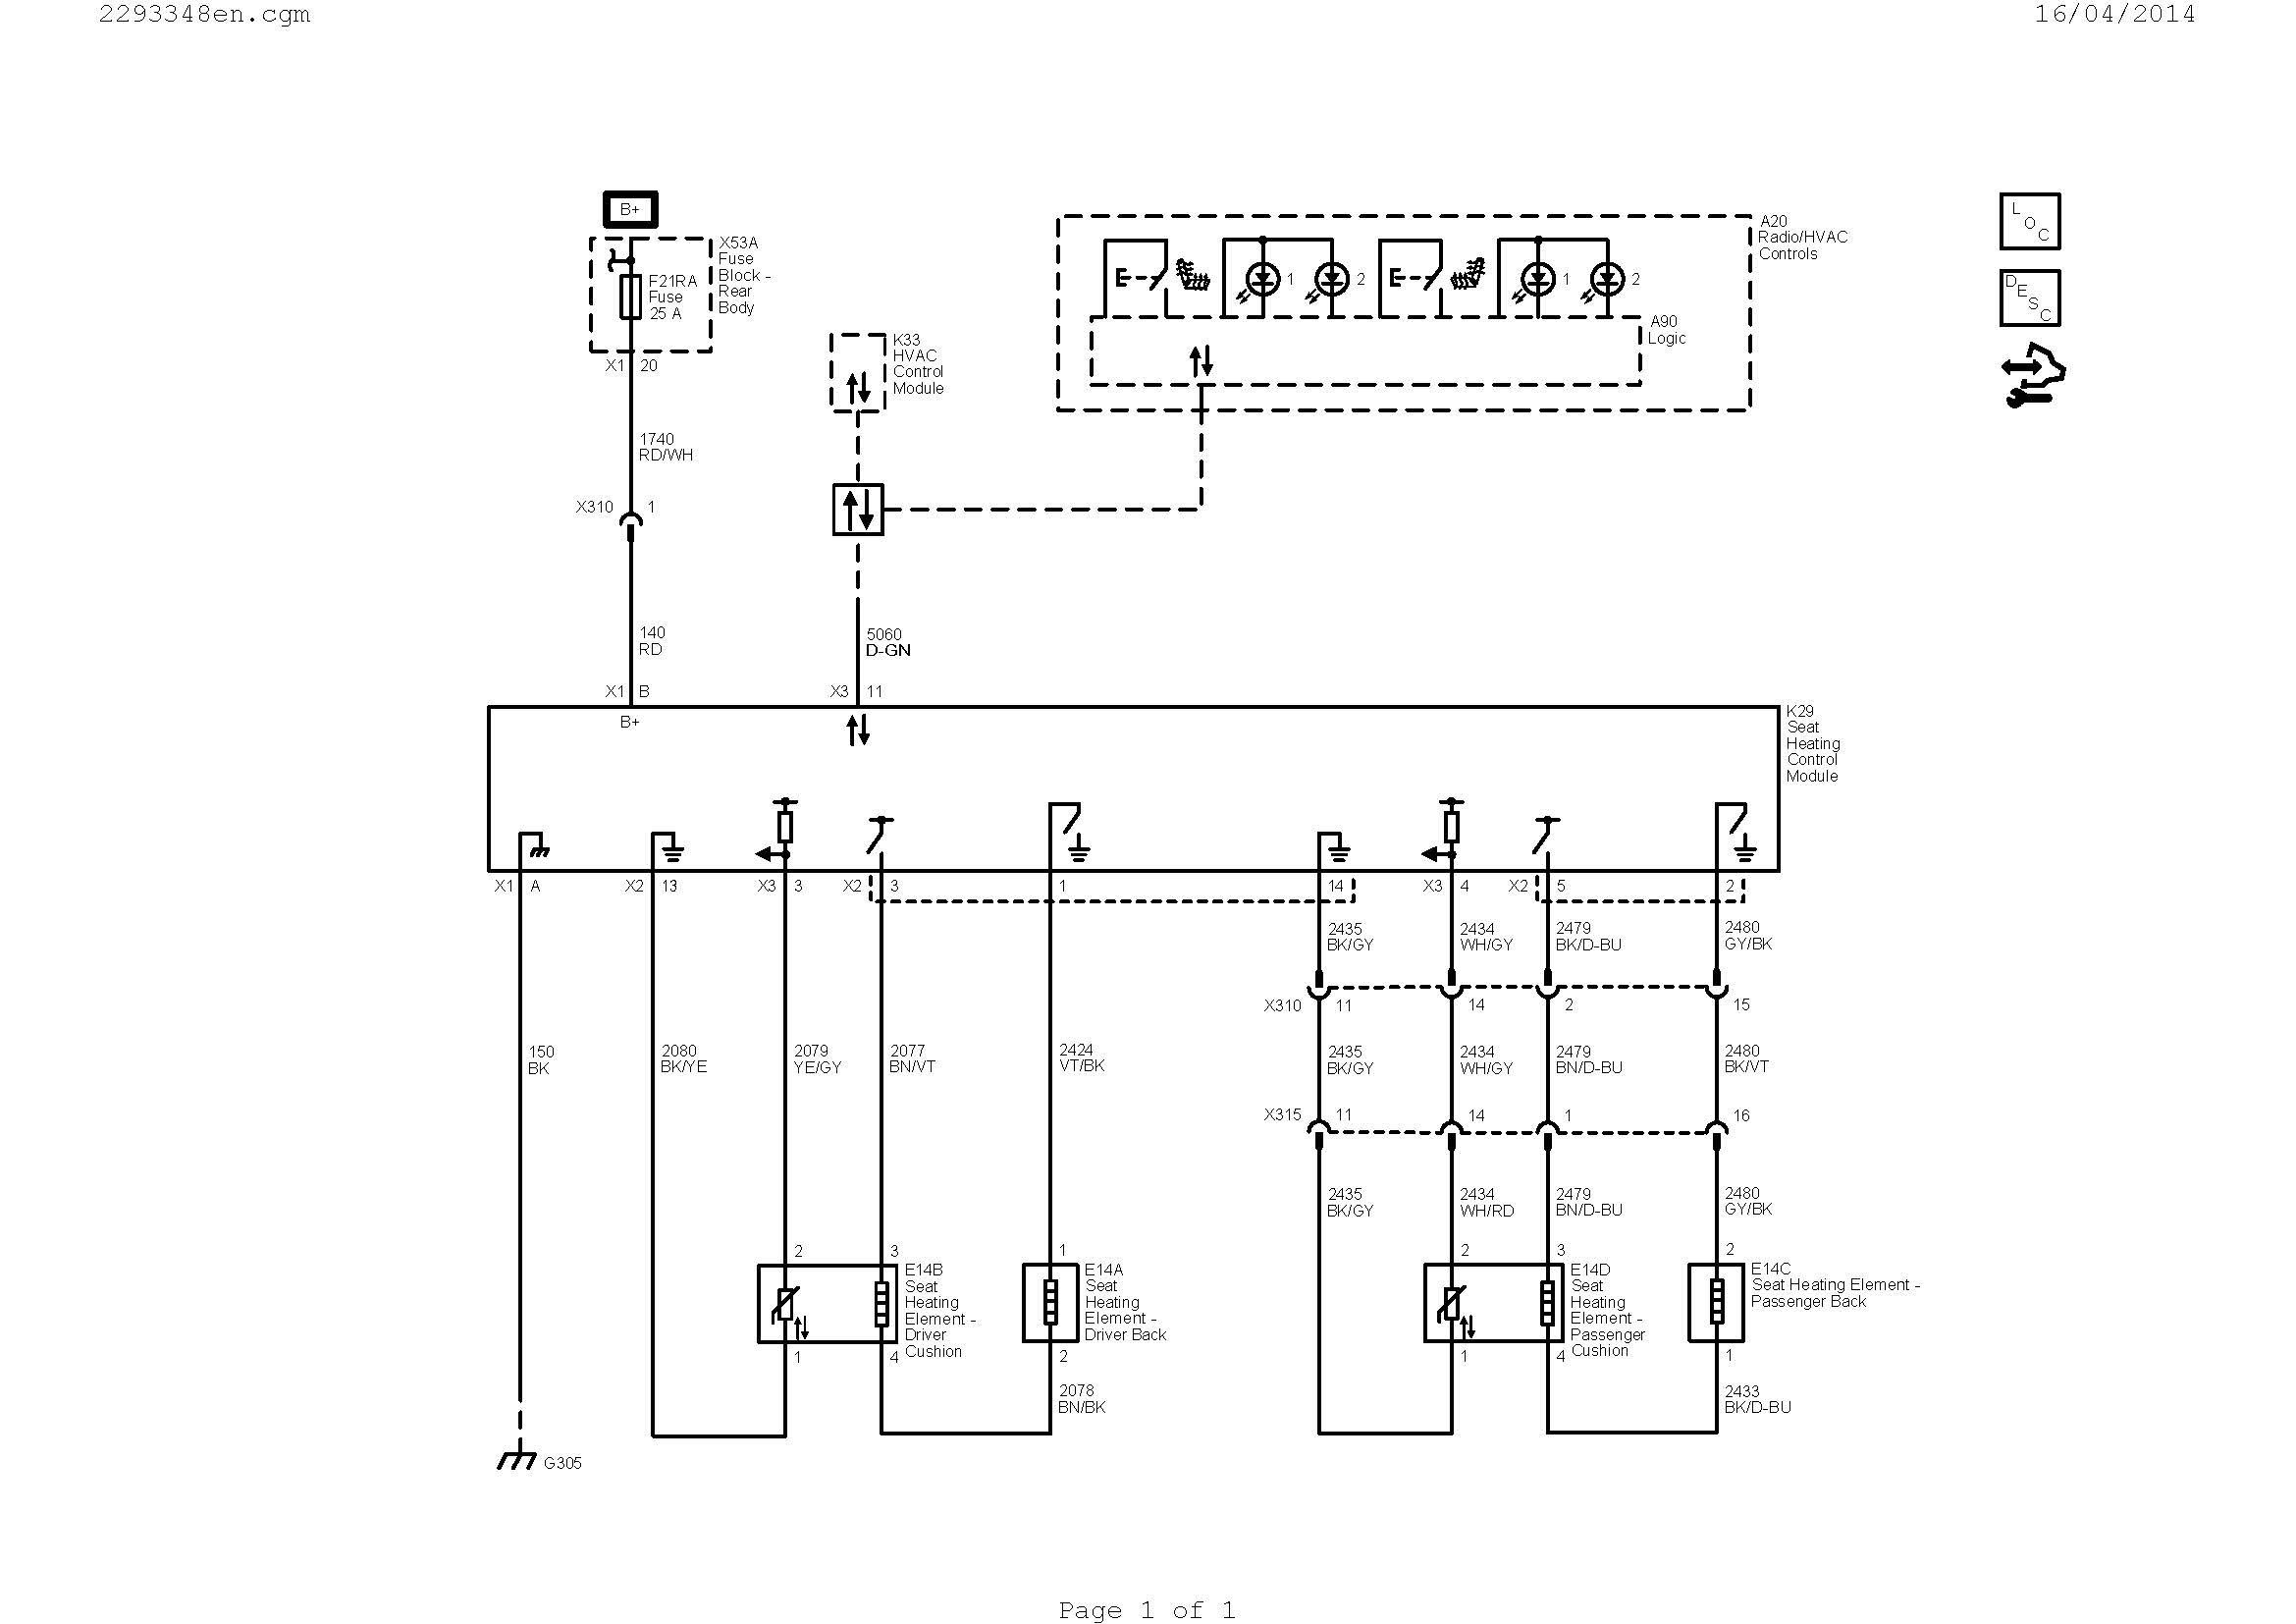 carrier ac unit wiring diagram Collection-7 wire thermostat wiring diagram Download Wiring A Ac Thermostat Diagram New Wiring Diagram Ac 6-b